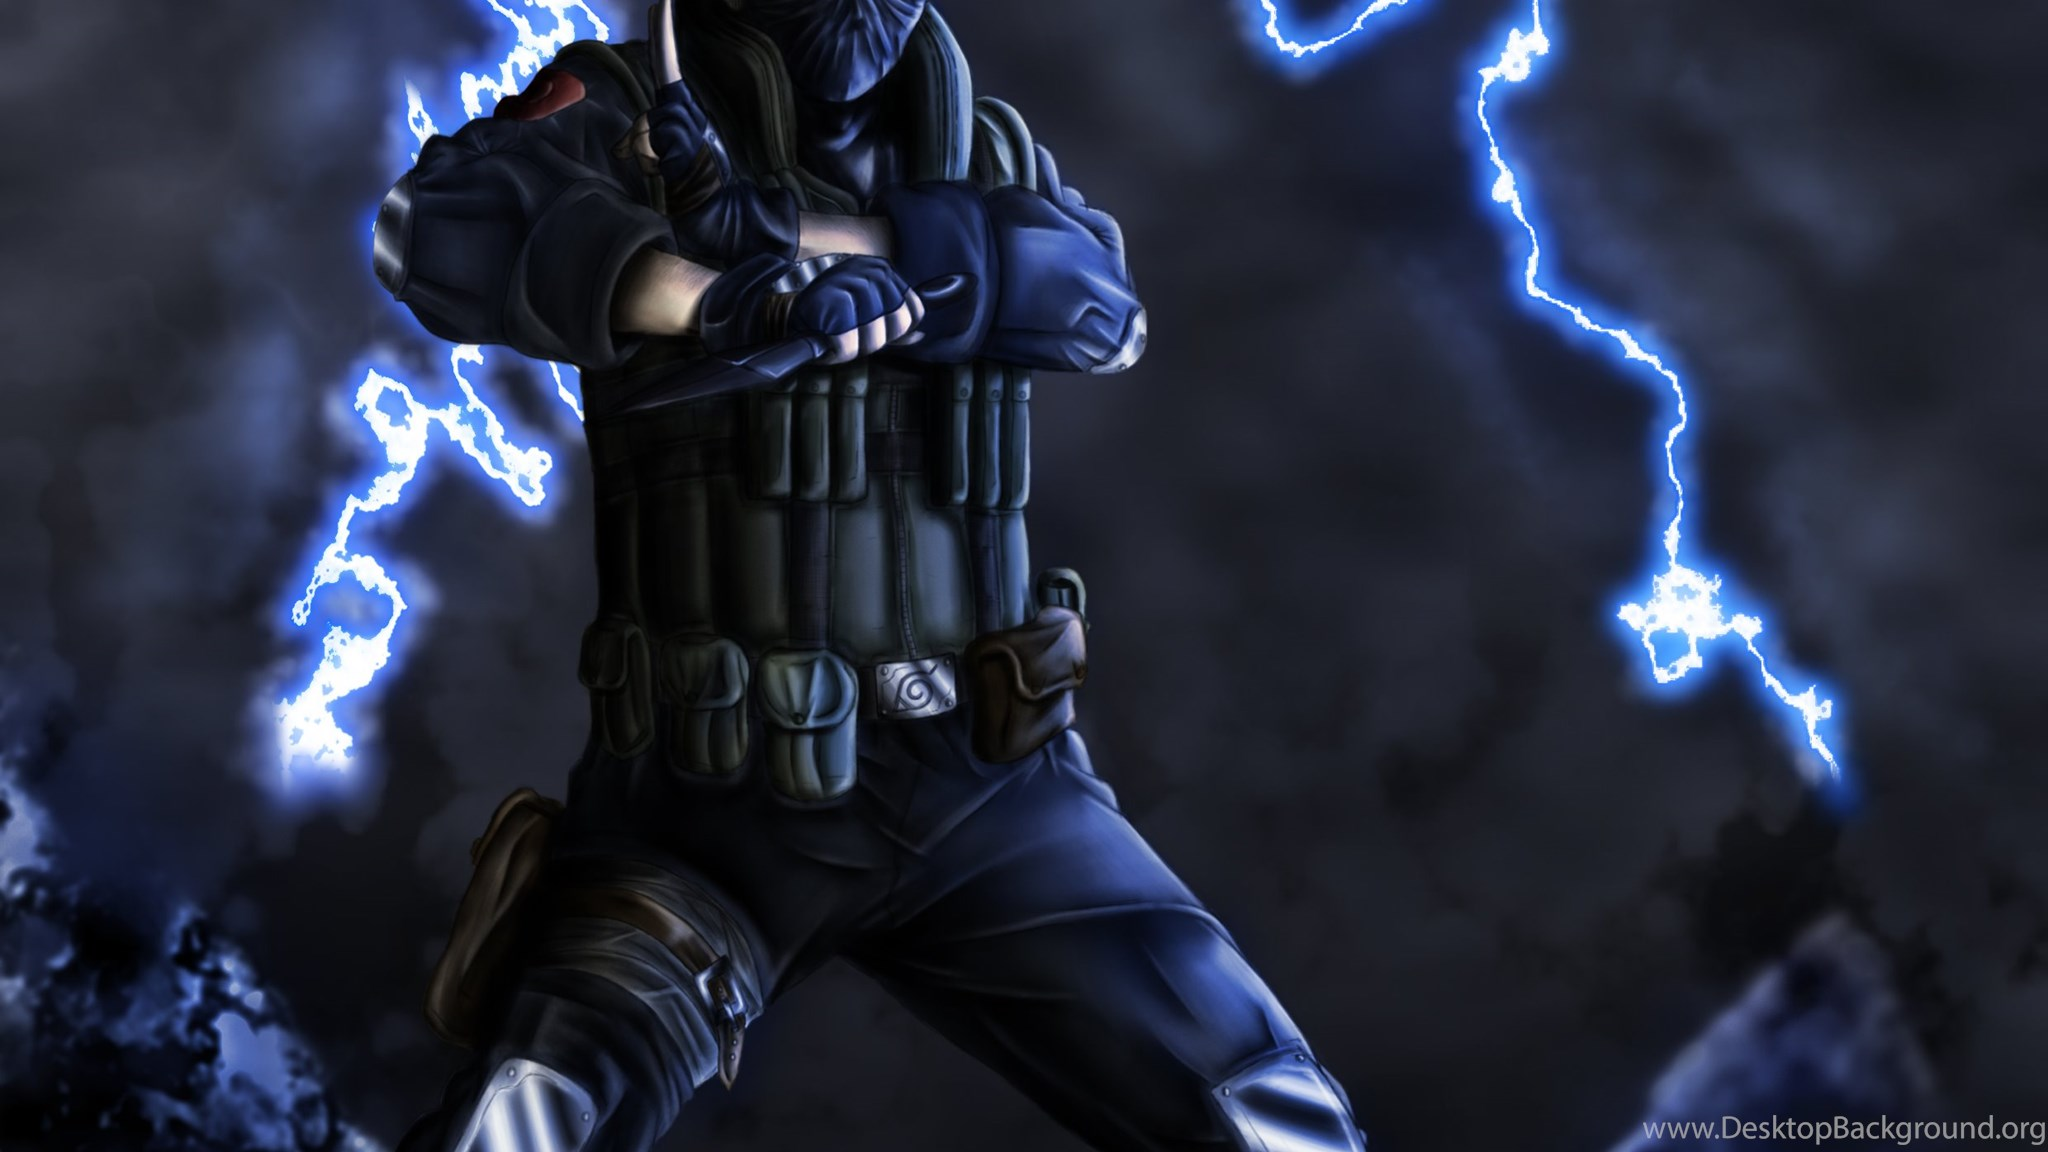 Naruto Hd Wallpaper 1600x900 Kakashi Realistic With Backgrounds By Monkf14 On